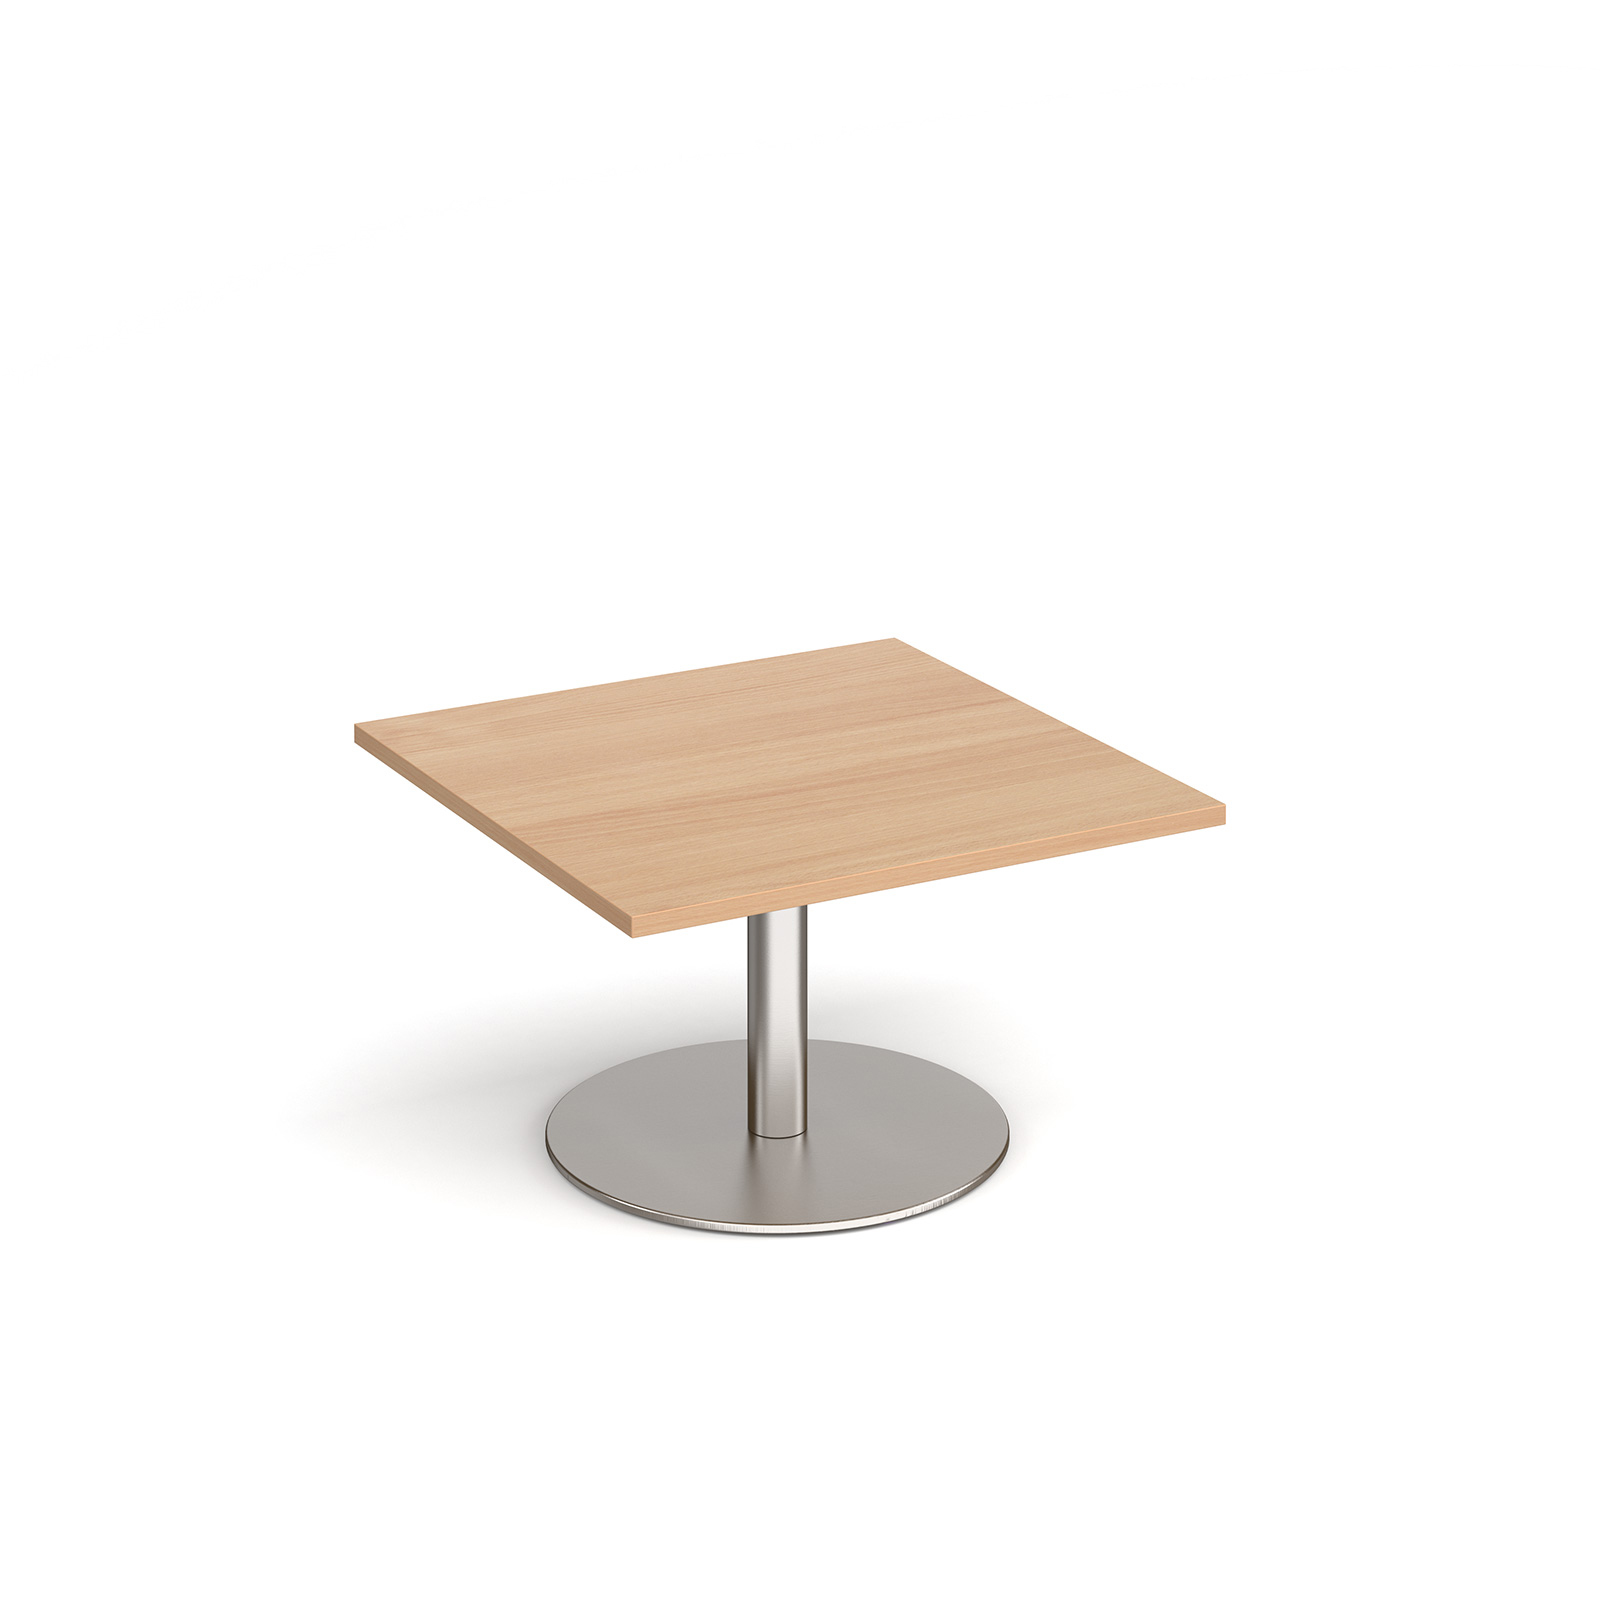 Monza square coffee table with flat round base